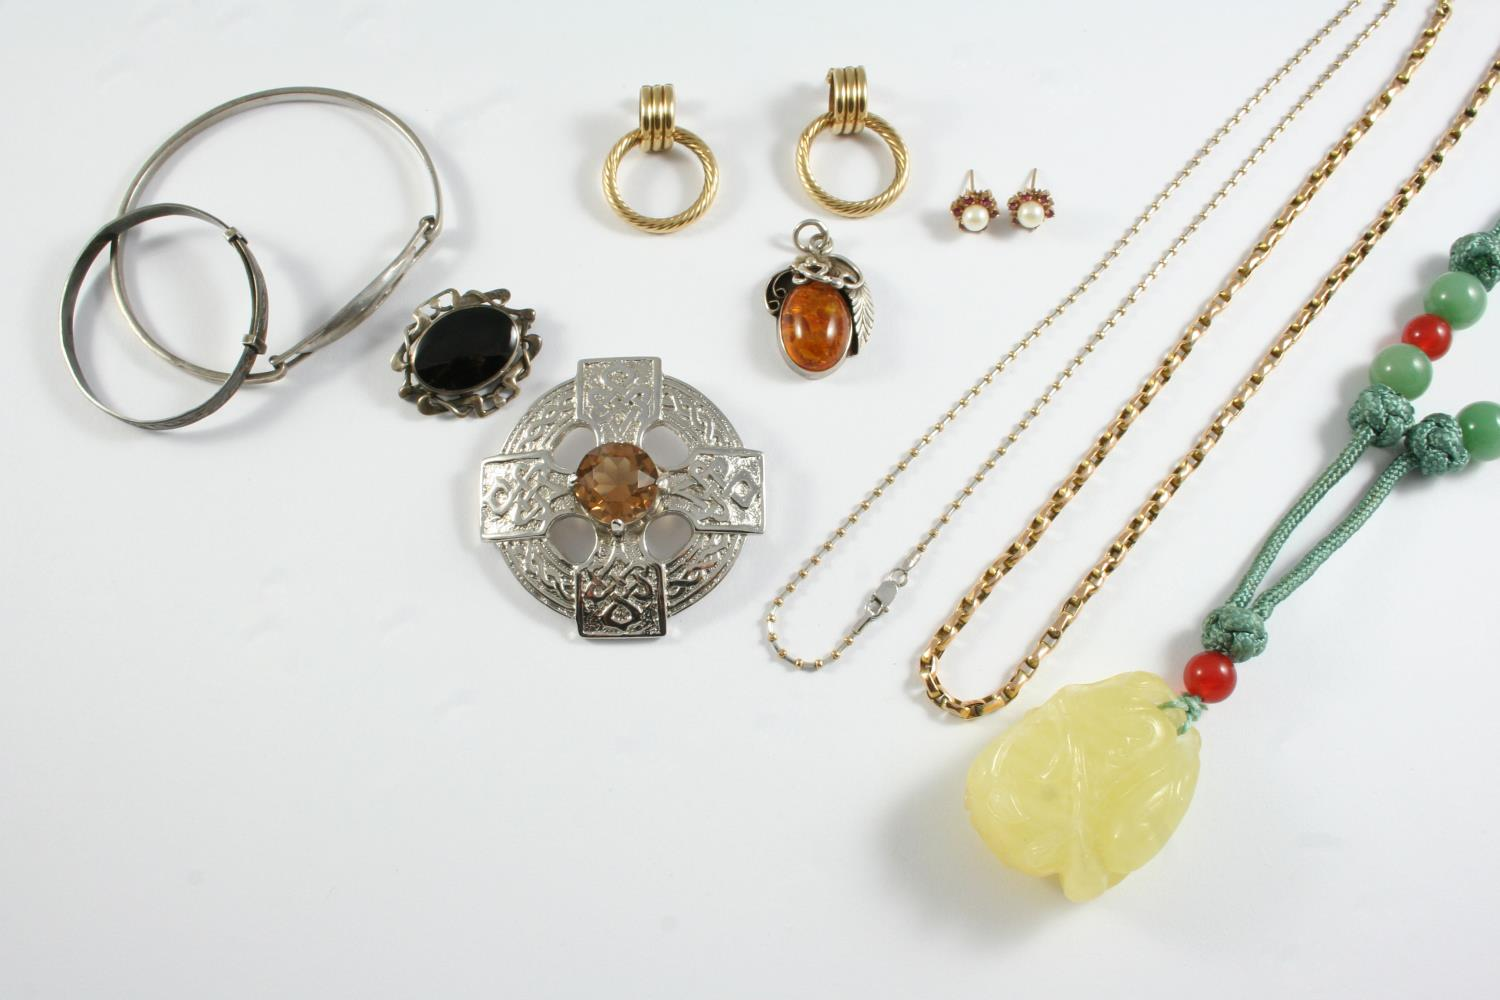 A QUANTITY OF JEWELLERY including a 9ct gold chain necklace, 8.9 grams, a 9ct necklace, damaged, 5.6